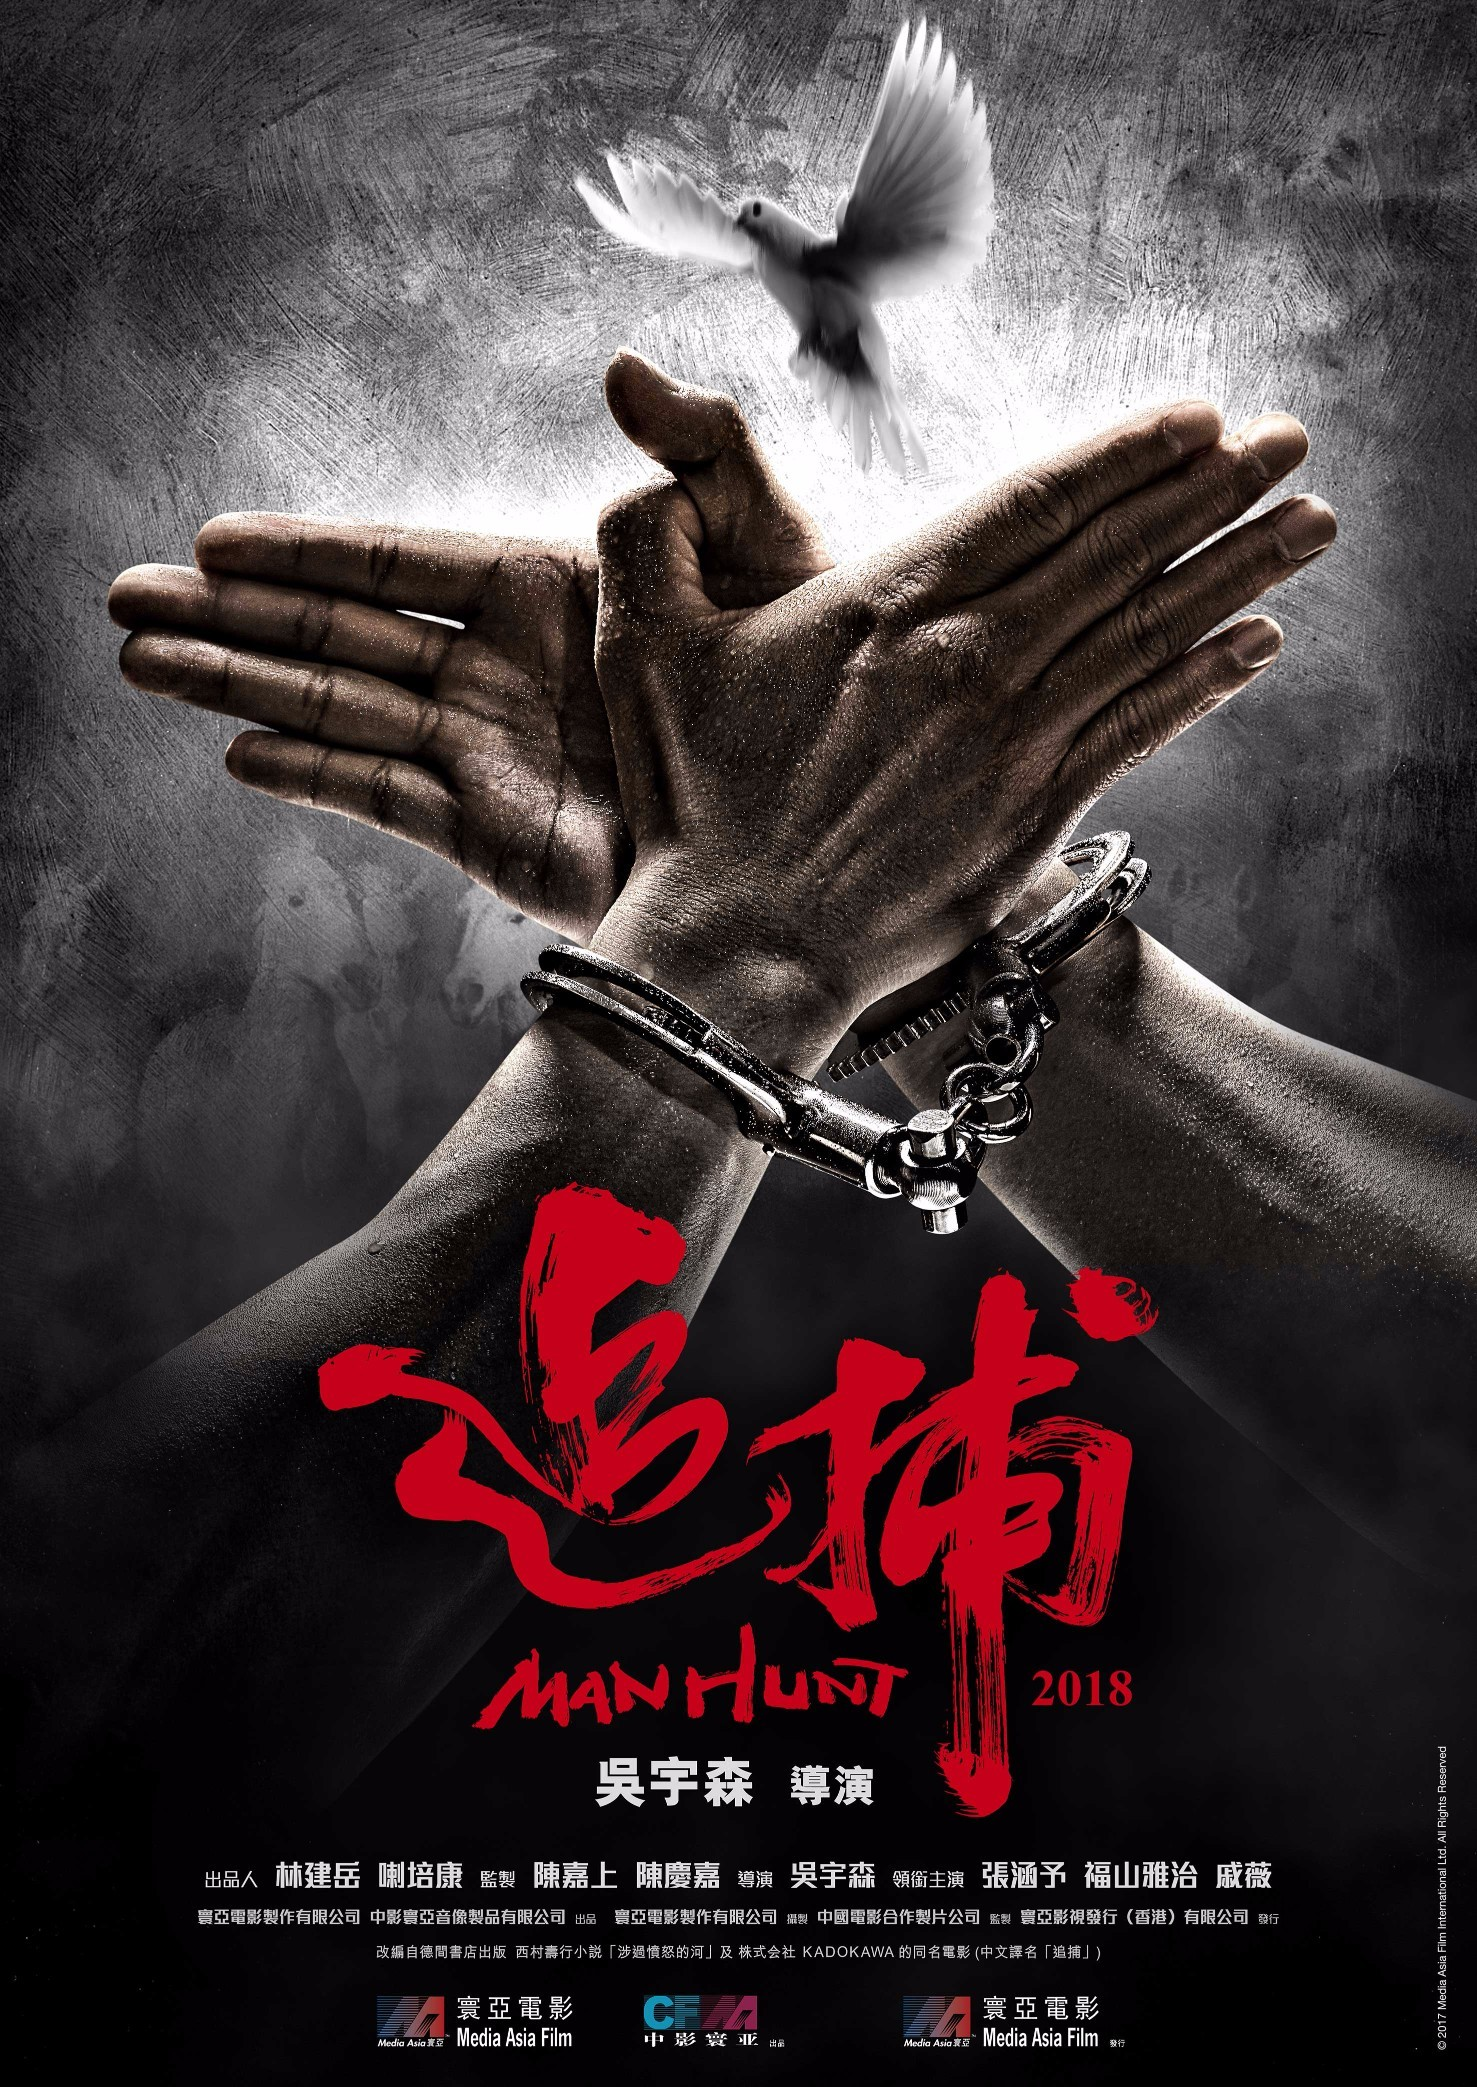 映画『追捕 MANHUNT(原題)』ティザーポスター 2017 Media Asia Film international Ltd. All Rights Reserved